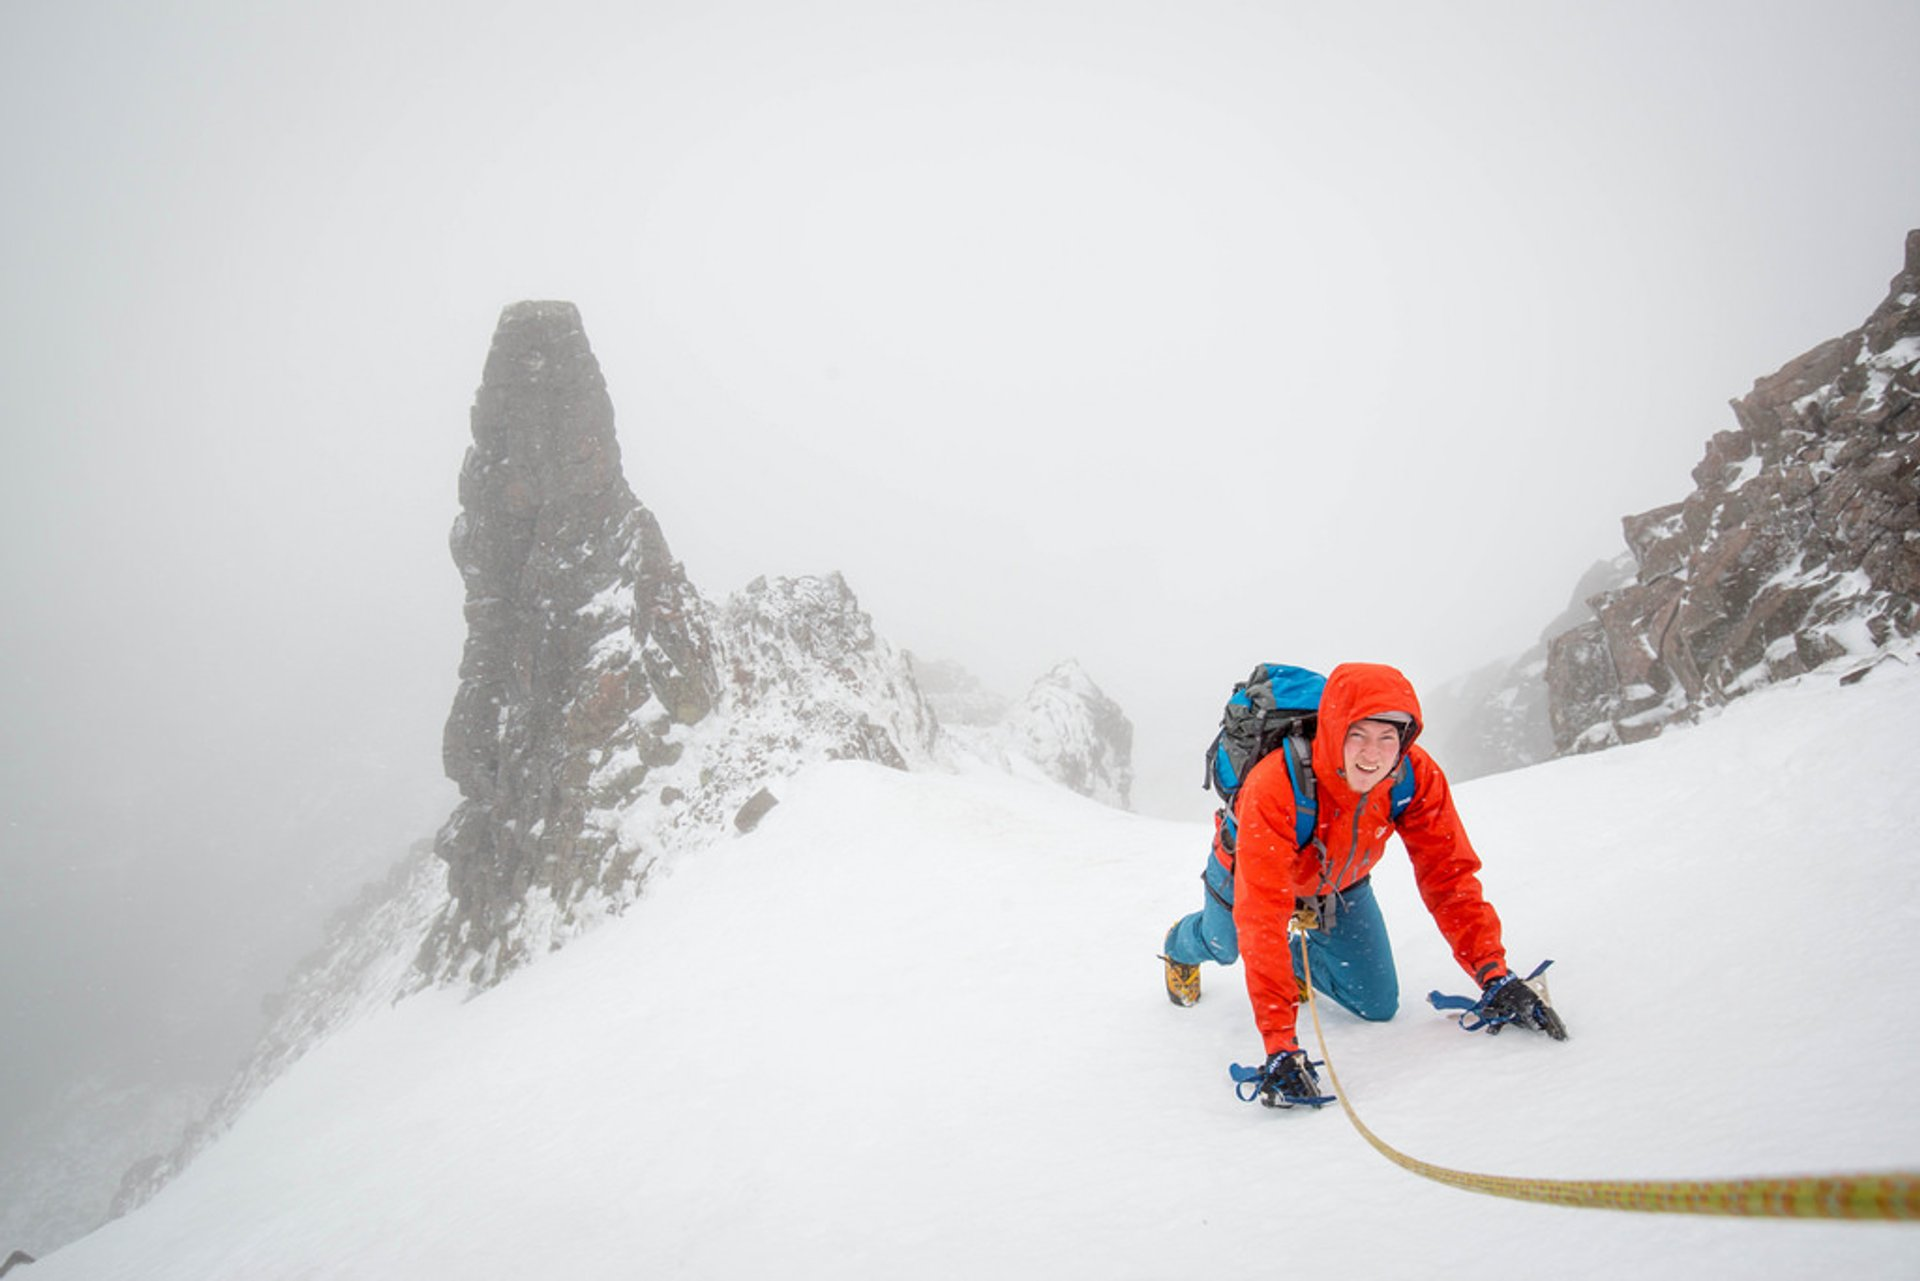 Winter Mountaineering and Ice Climbing in Scotland 2019 - Best Time